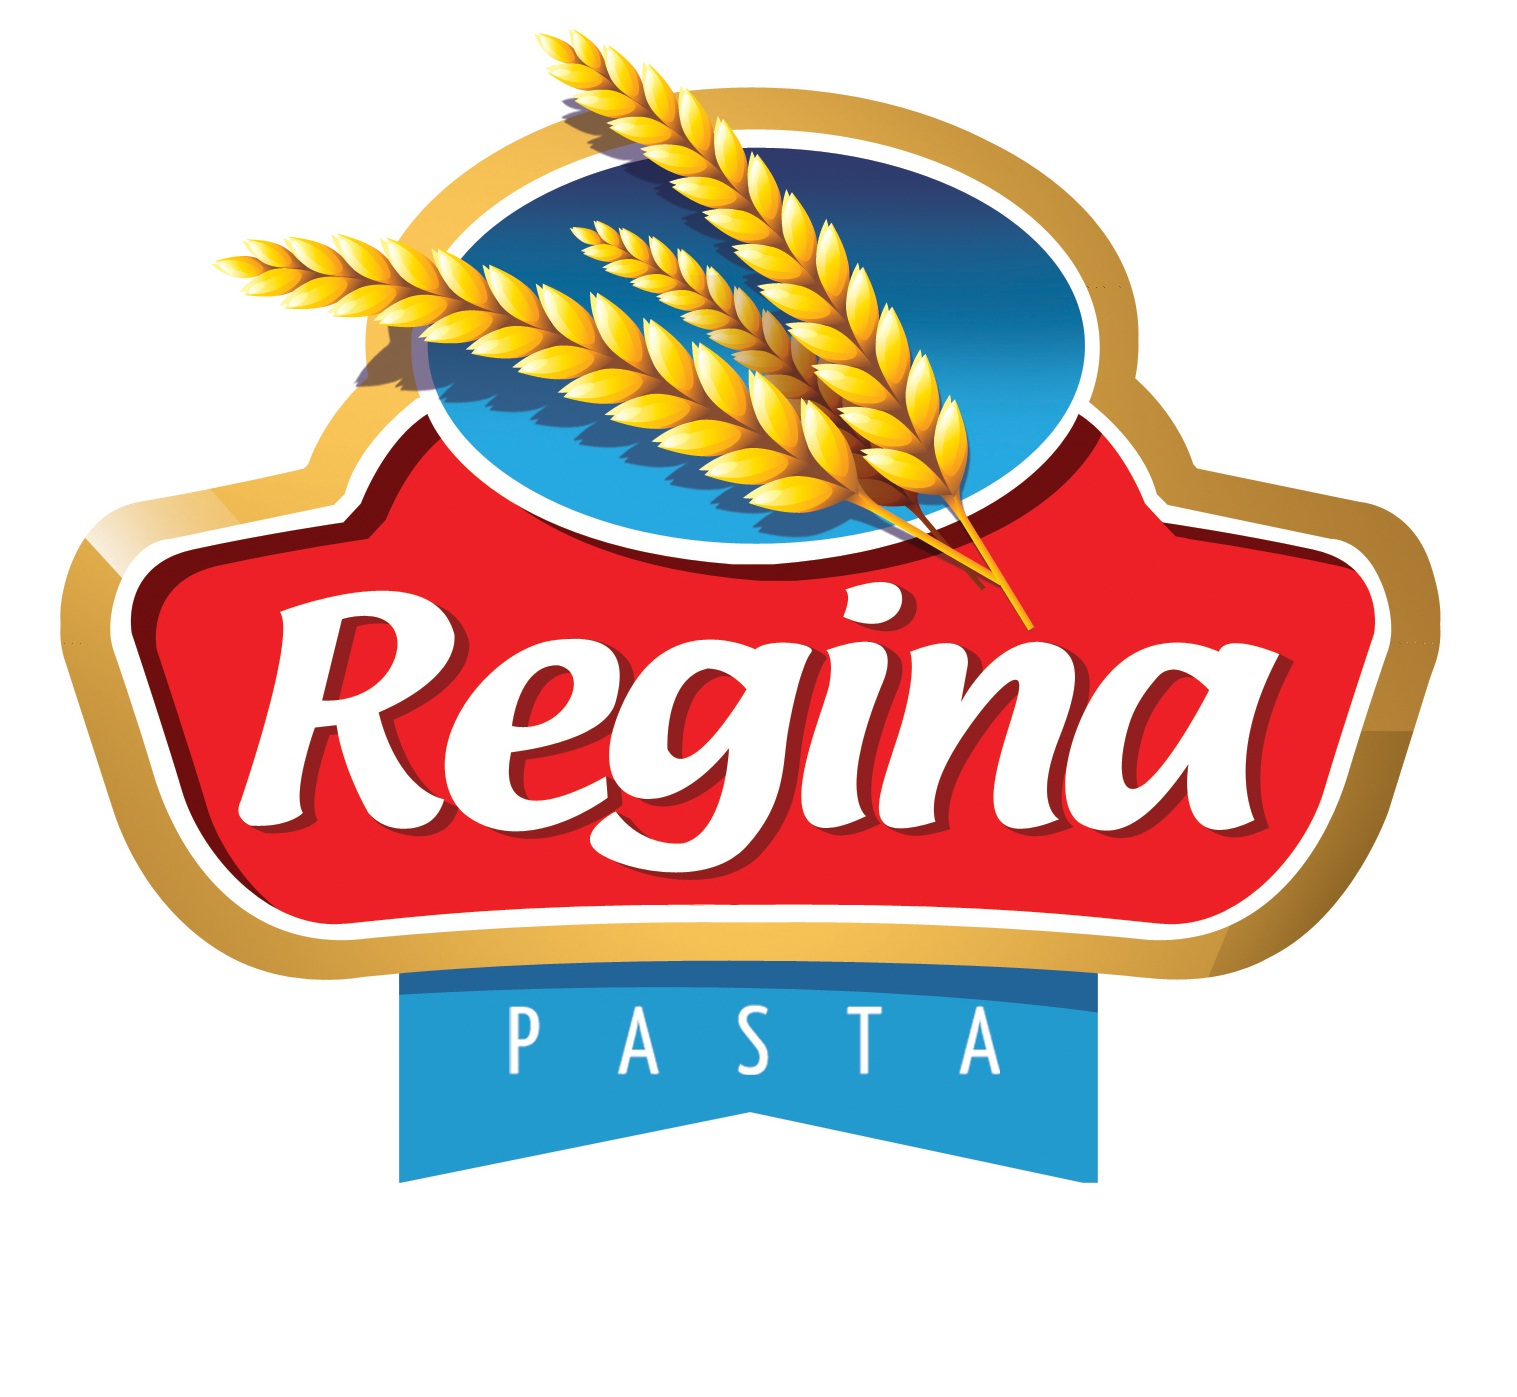 Regina Co. for Pasta and Food Industries